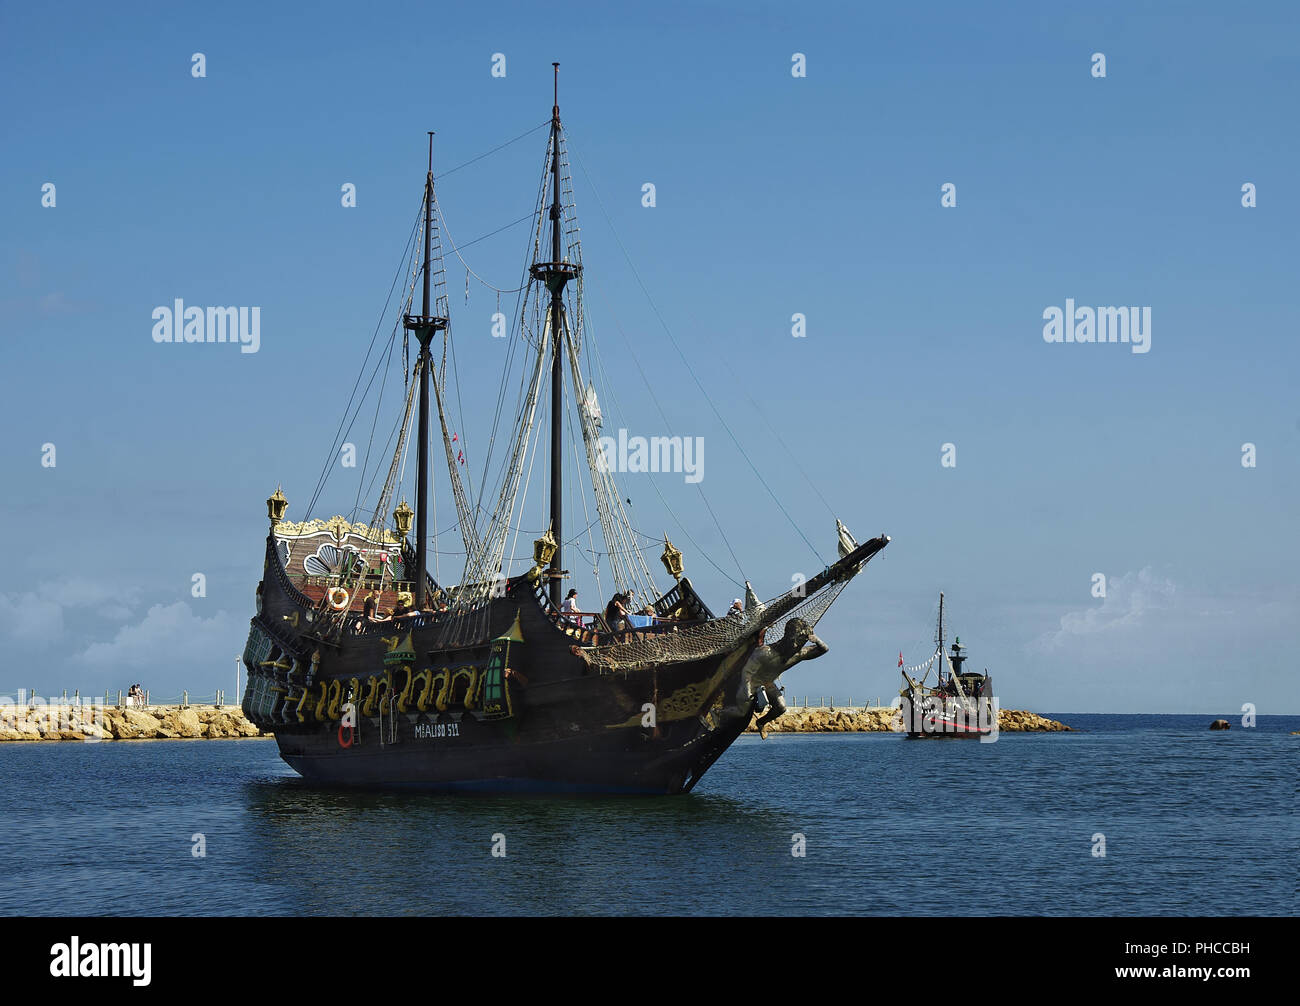 Pirate Ships Stock Photos & Pirate Ships Stock Images - Alamy